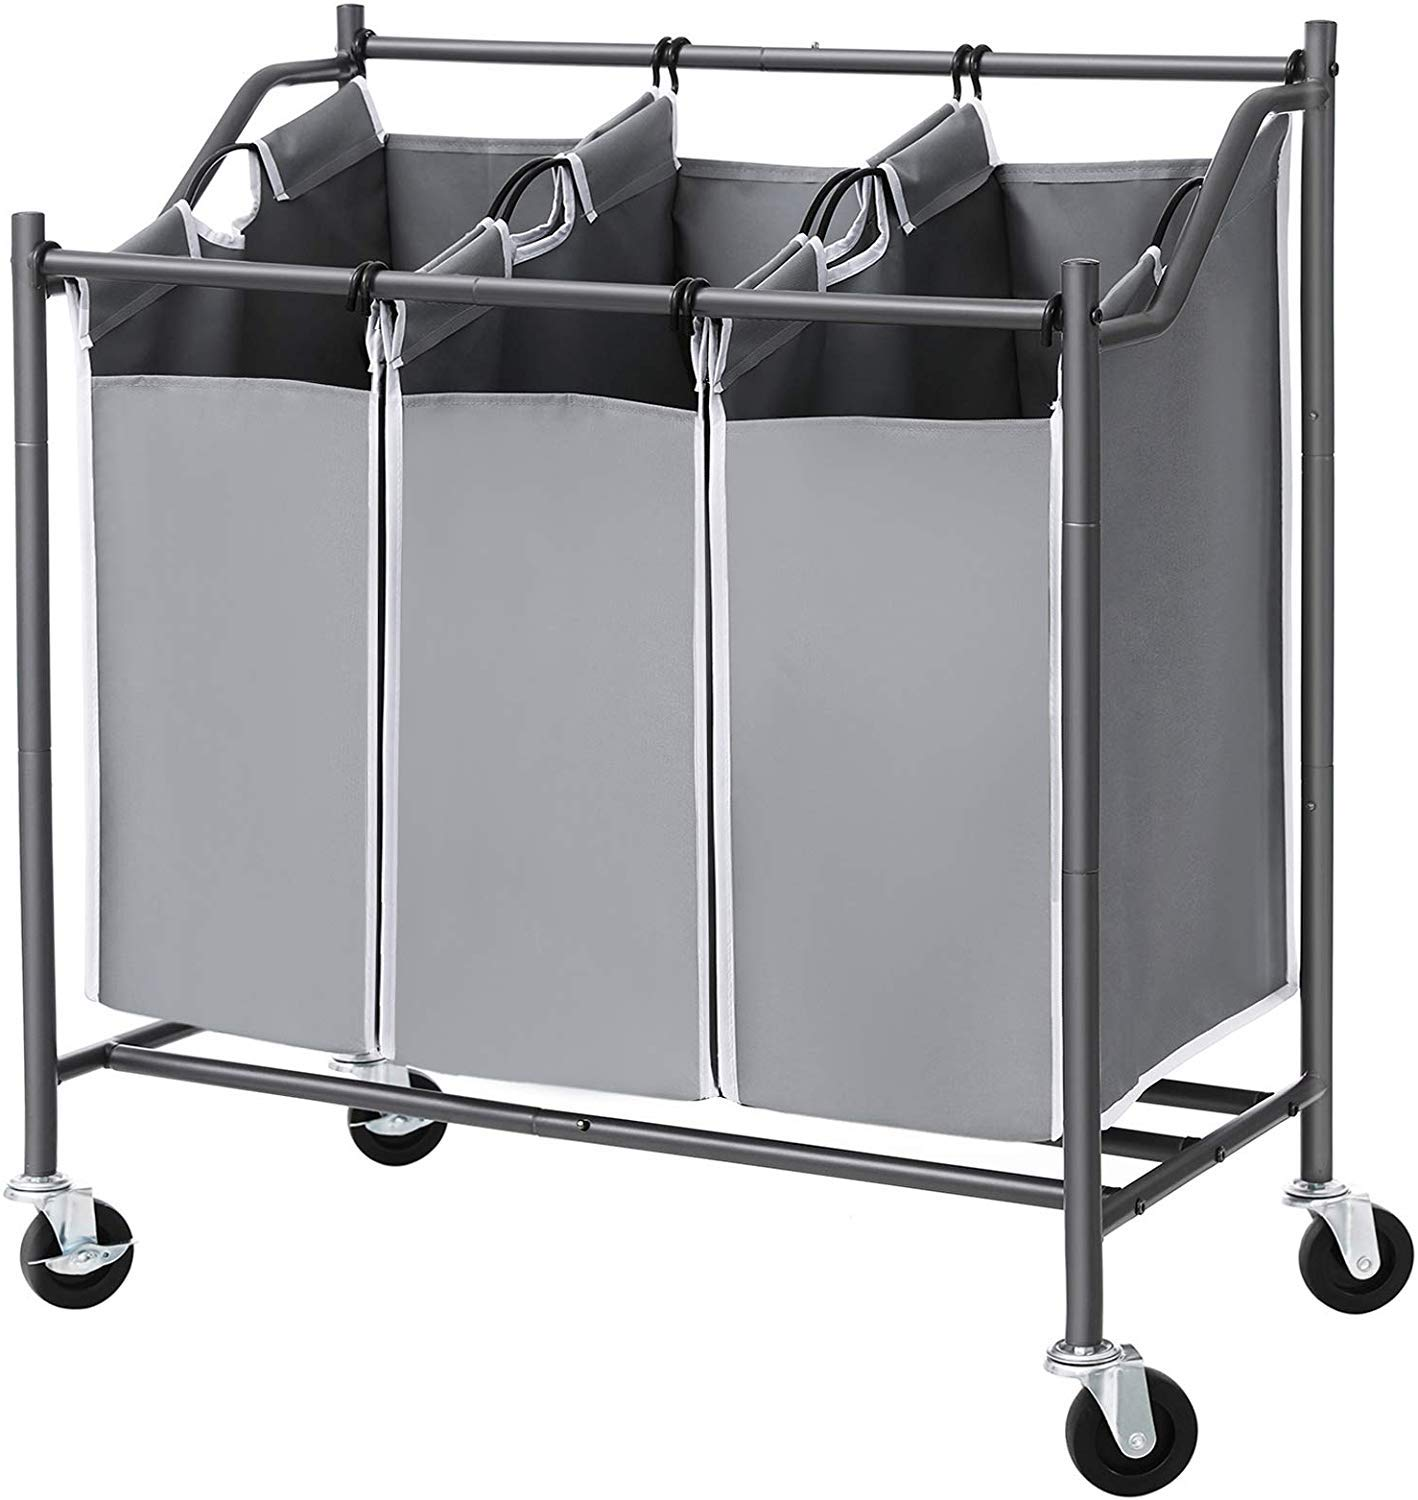 Songmics 3 Bag Laundry Cart Sorter Rolling Laundry Basket Hamper With Casters And Brakes Gray Urls70gs